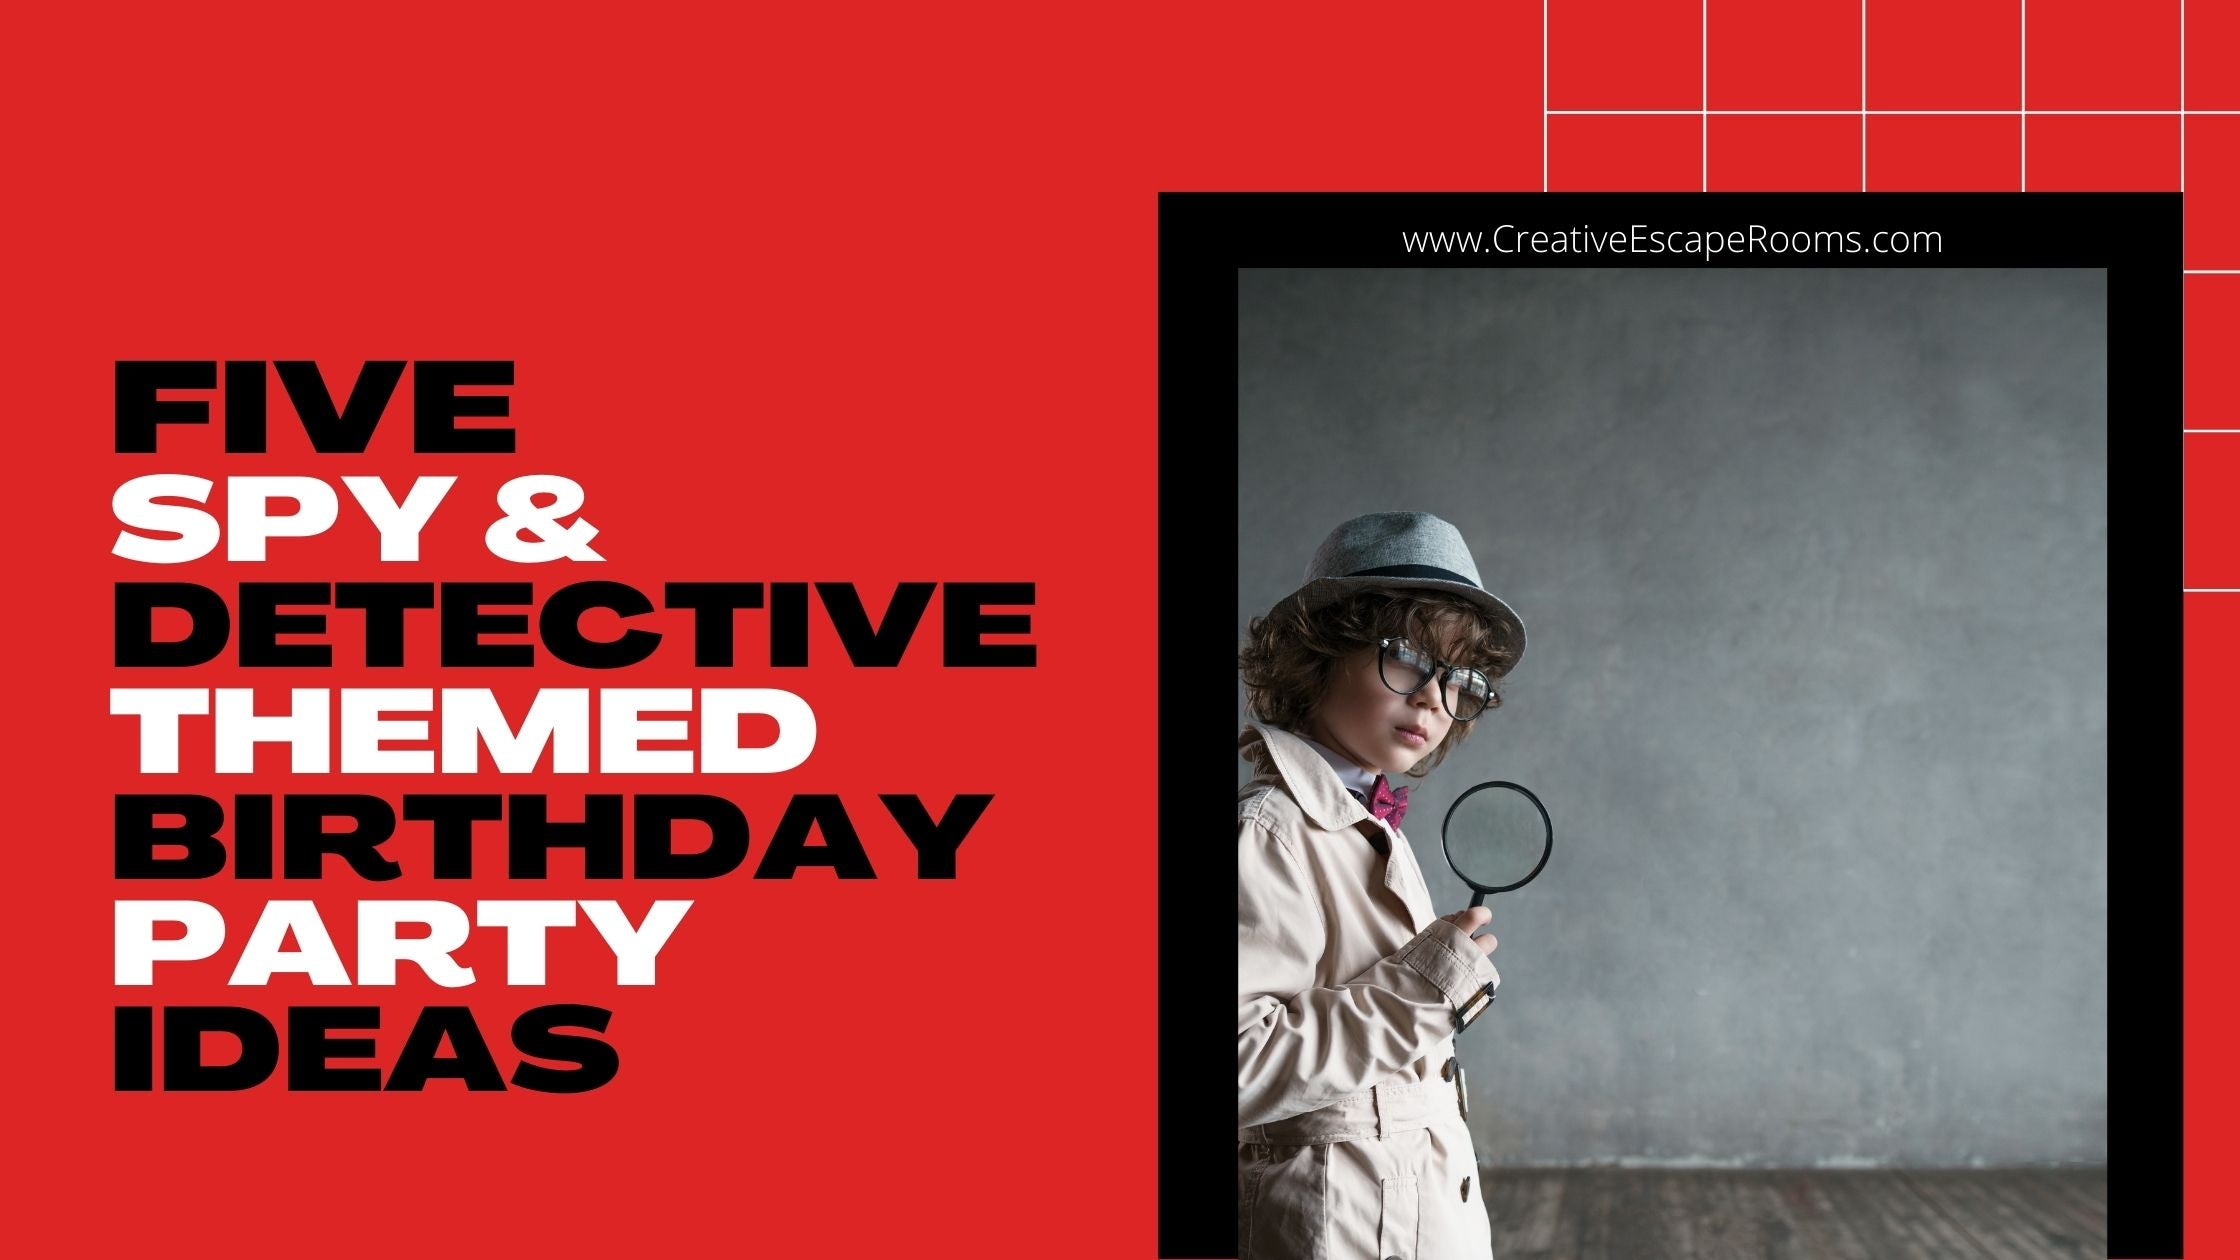 Five Spy and Detective Themed Birthday Party Ideas